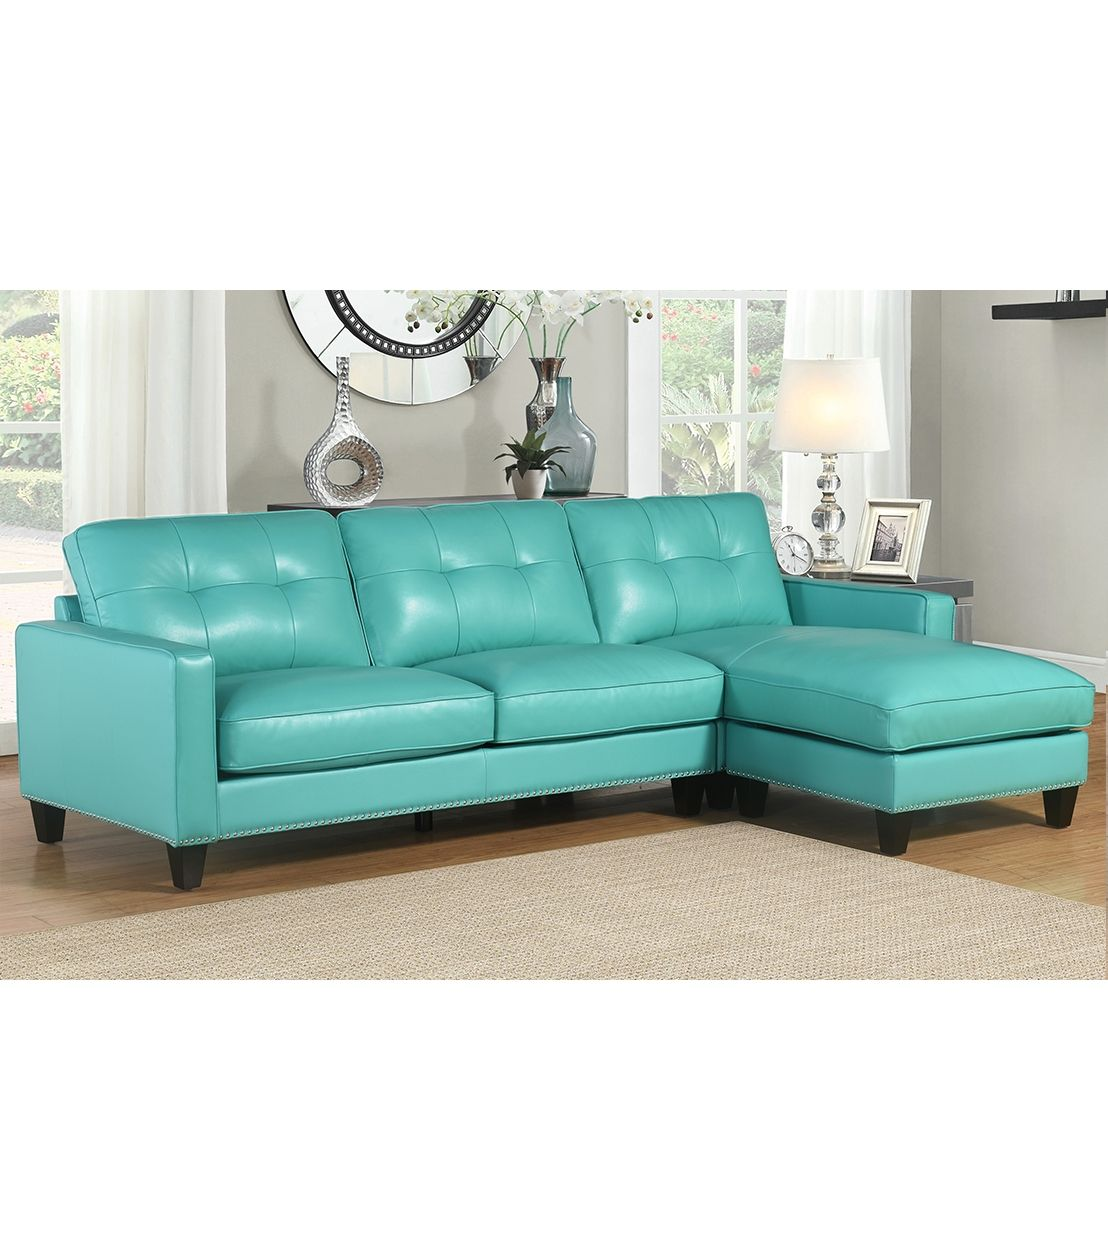 Aqua Leather Sectional Sofa Living